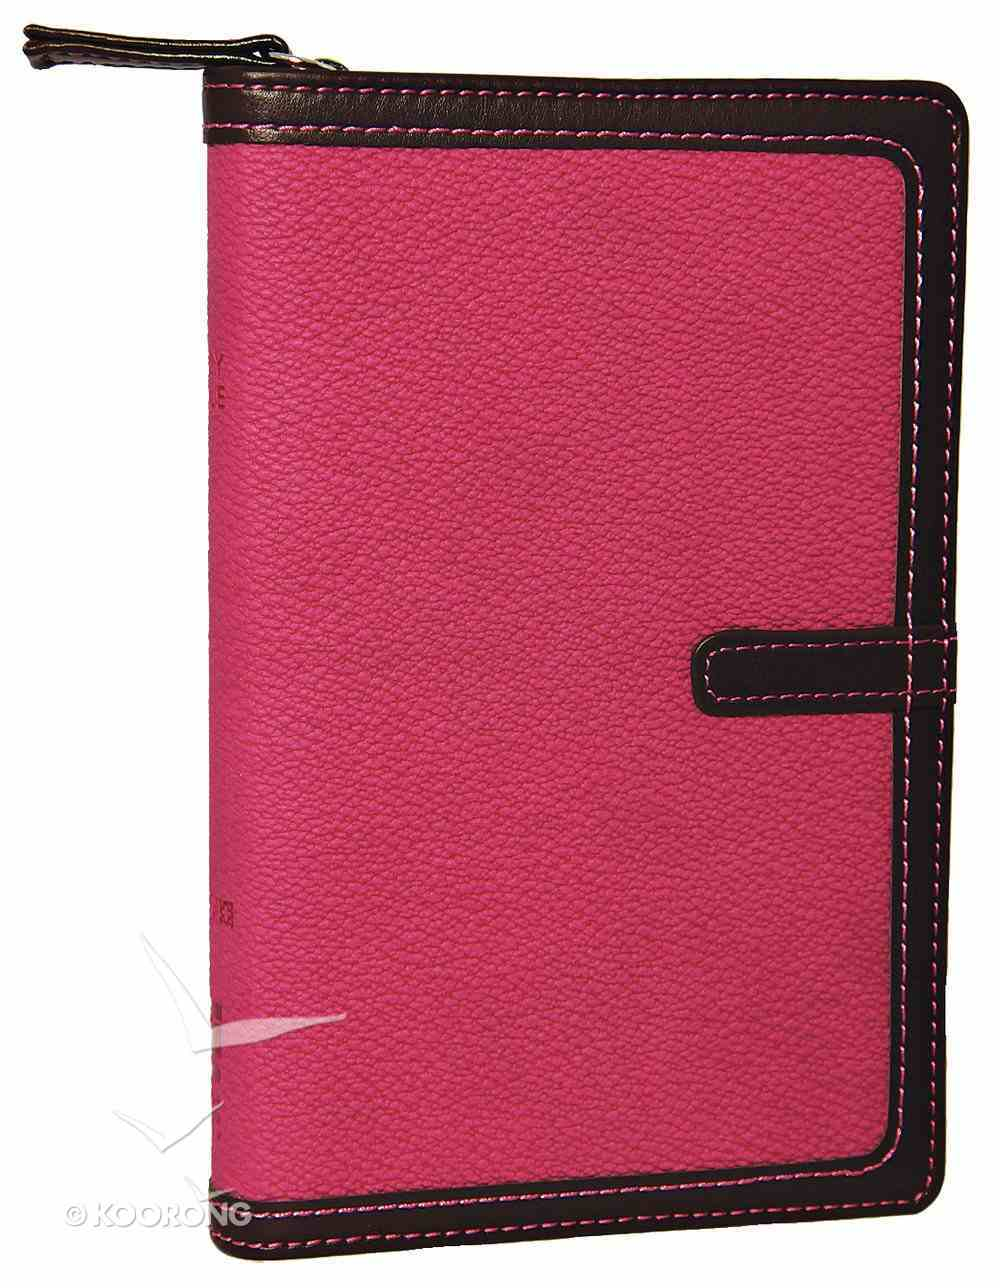 NIV Compact Thinline Bible Zippered Orchid/Chocolate Duo-Tone (Red Letter Edition) Imitation Leather